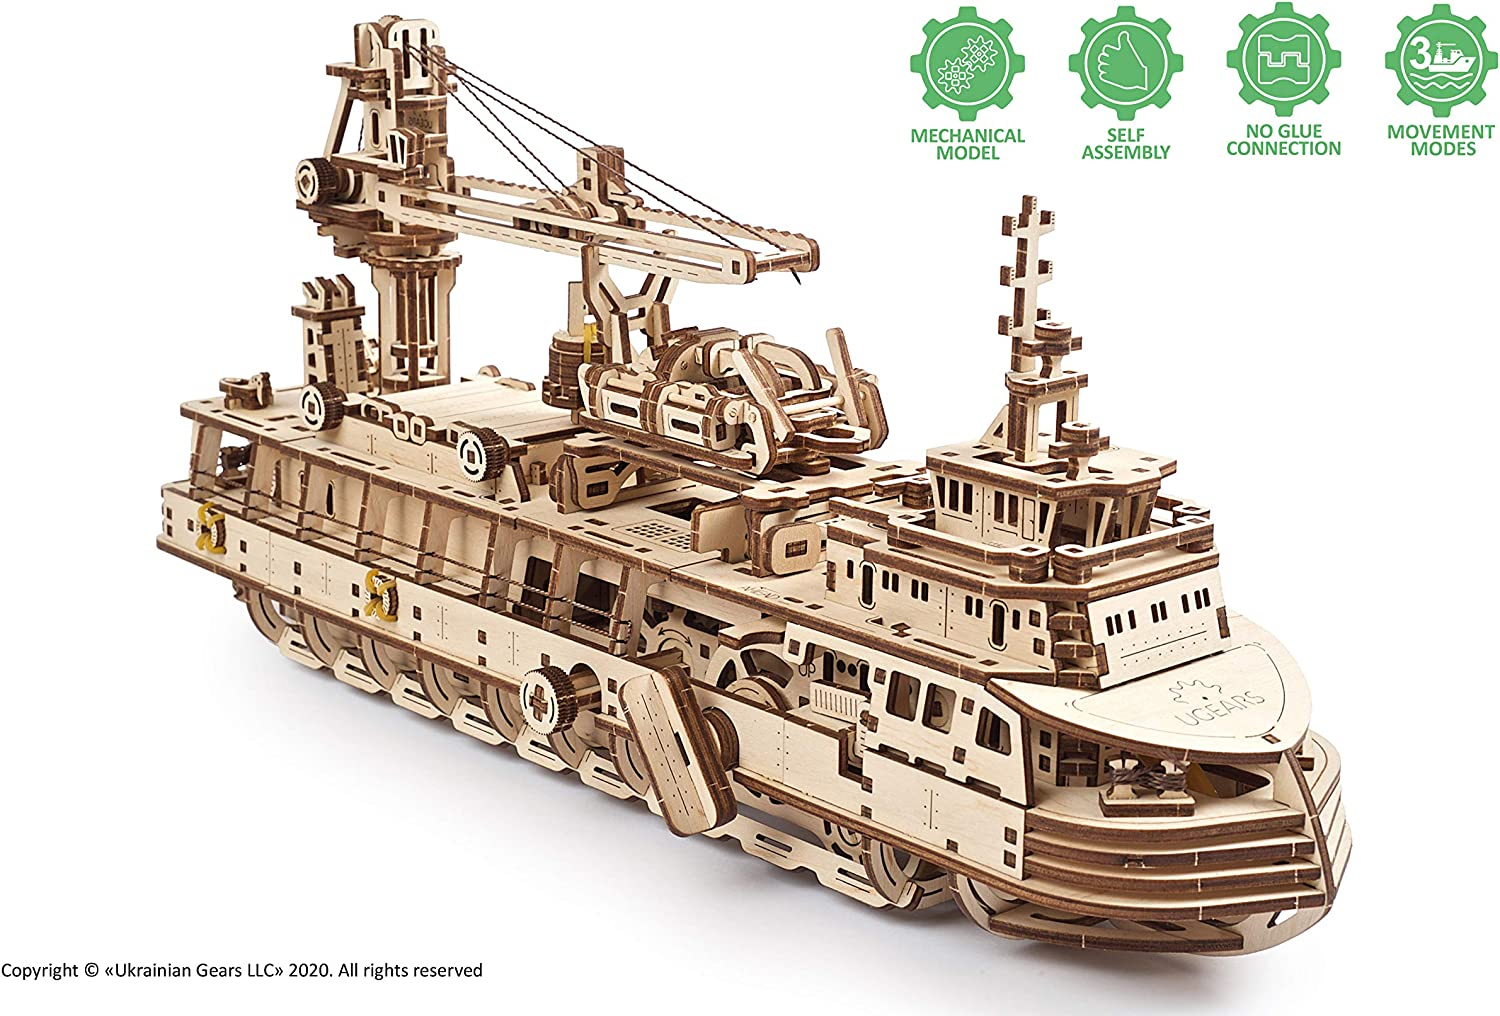 UGEARS 3D Puzzles Research Vessel - DIY Model Ship 3D - Exclusive Wooden Model Kits for Adults to Build - Unique and Creative Wooden Mechanical Models - Self Assembly Woodcraft Construction Kits